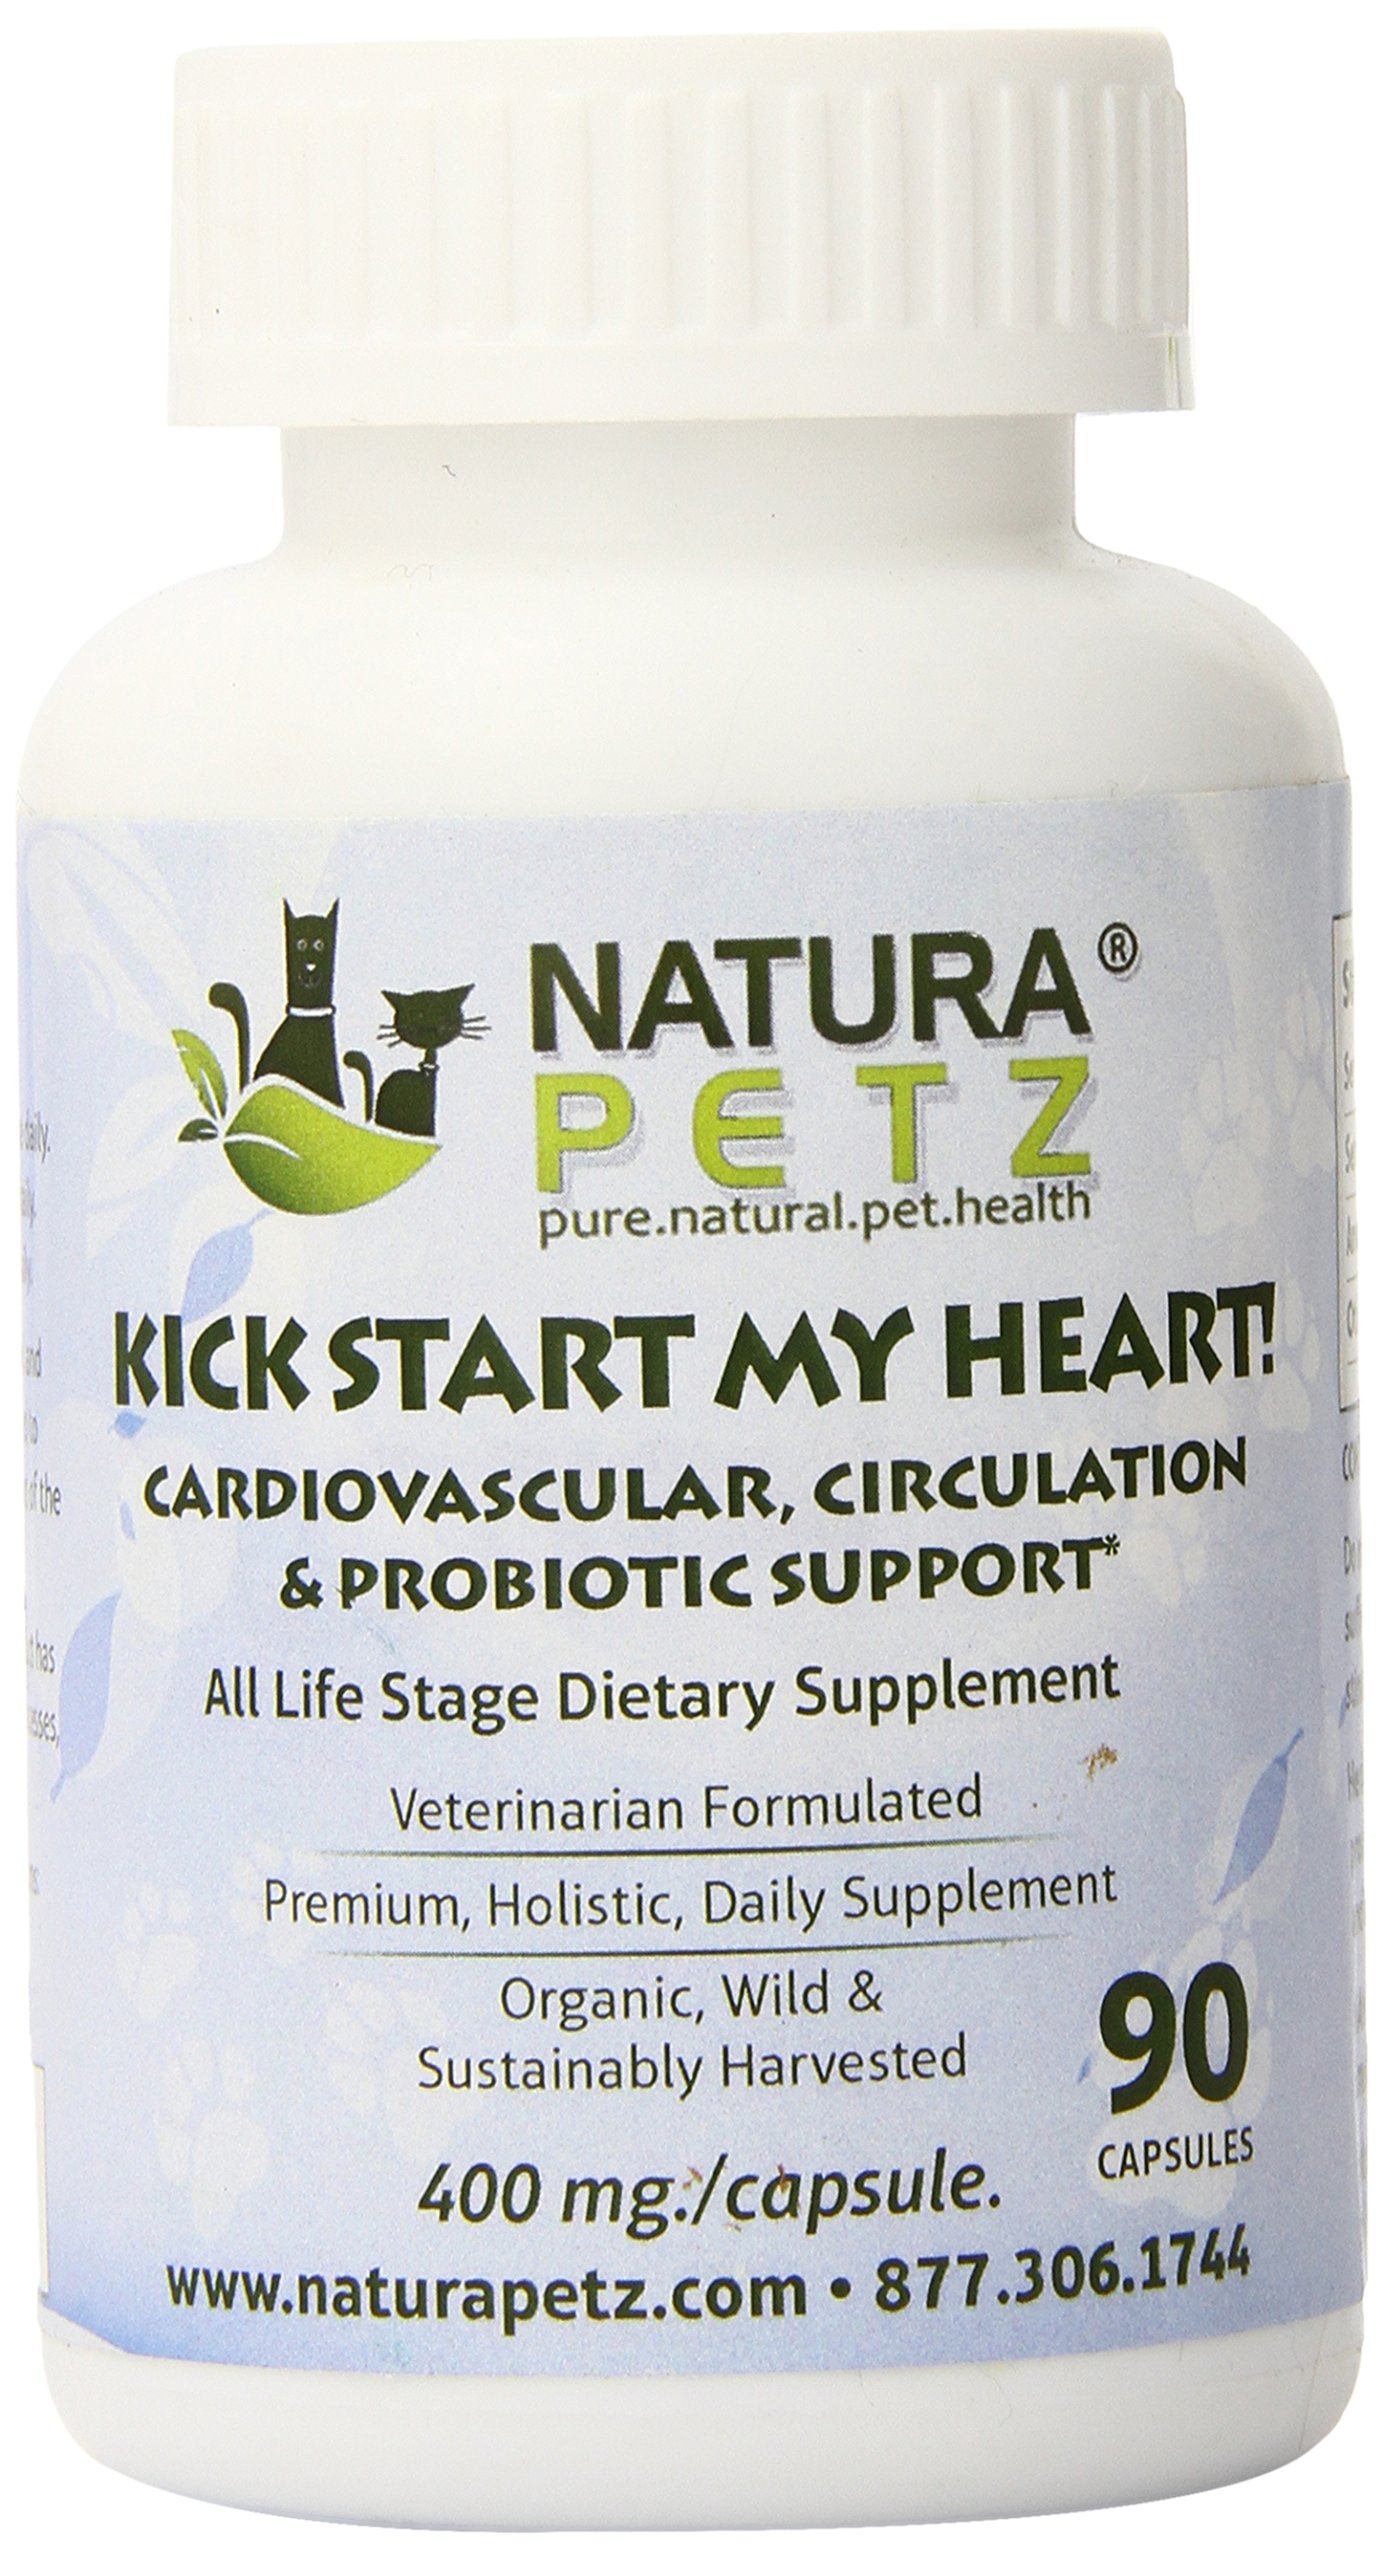 Natura Petz Kick Start My Heart Probiotic Cardiovascular and Circulation Support for Pets, 90 Capsules, 400mg Per Capsule